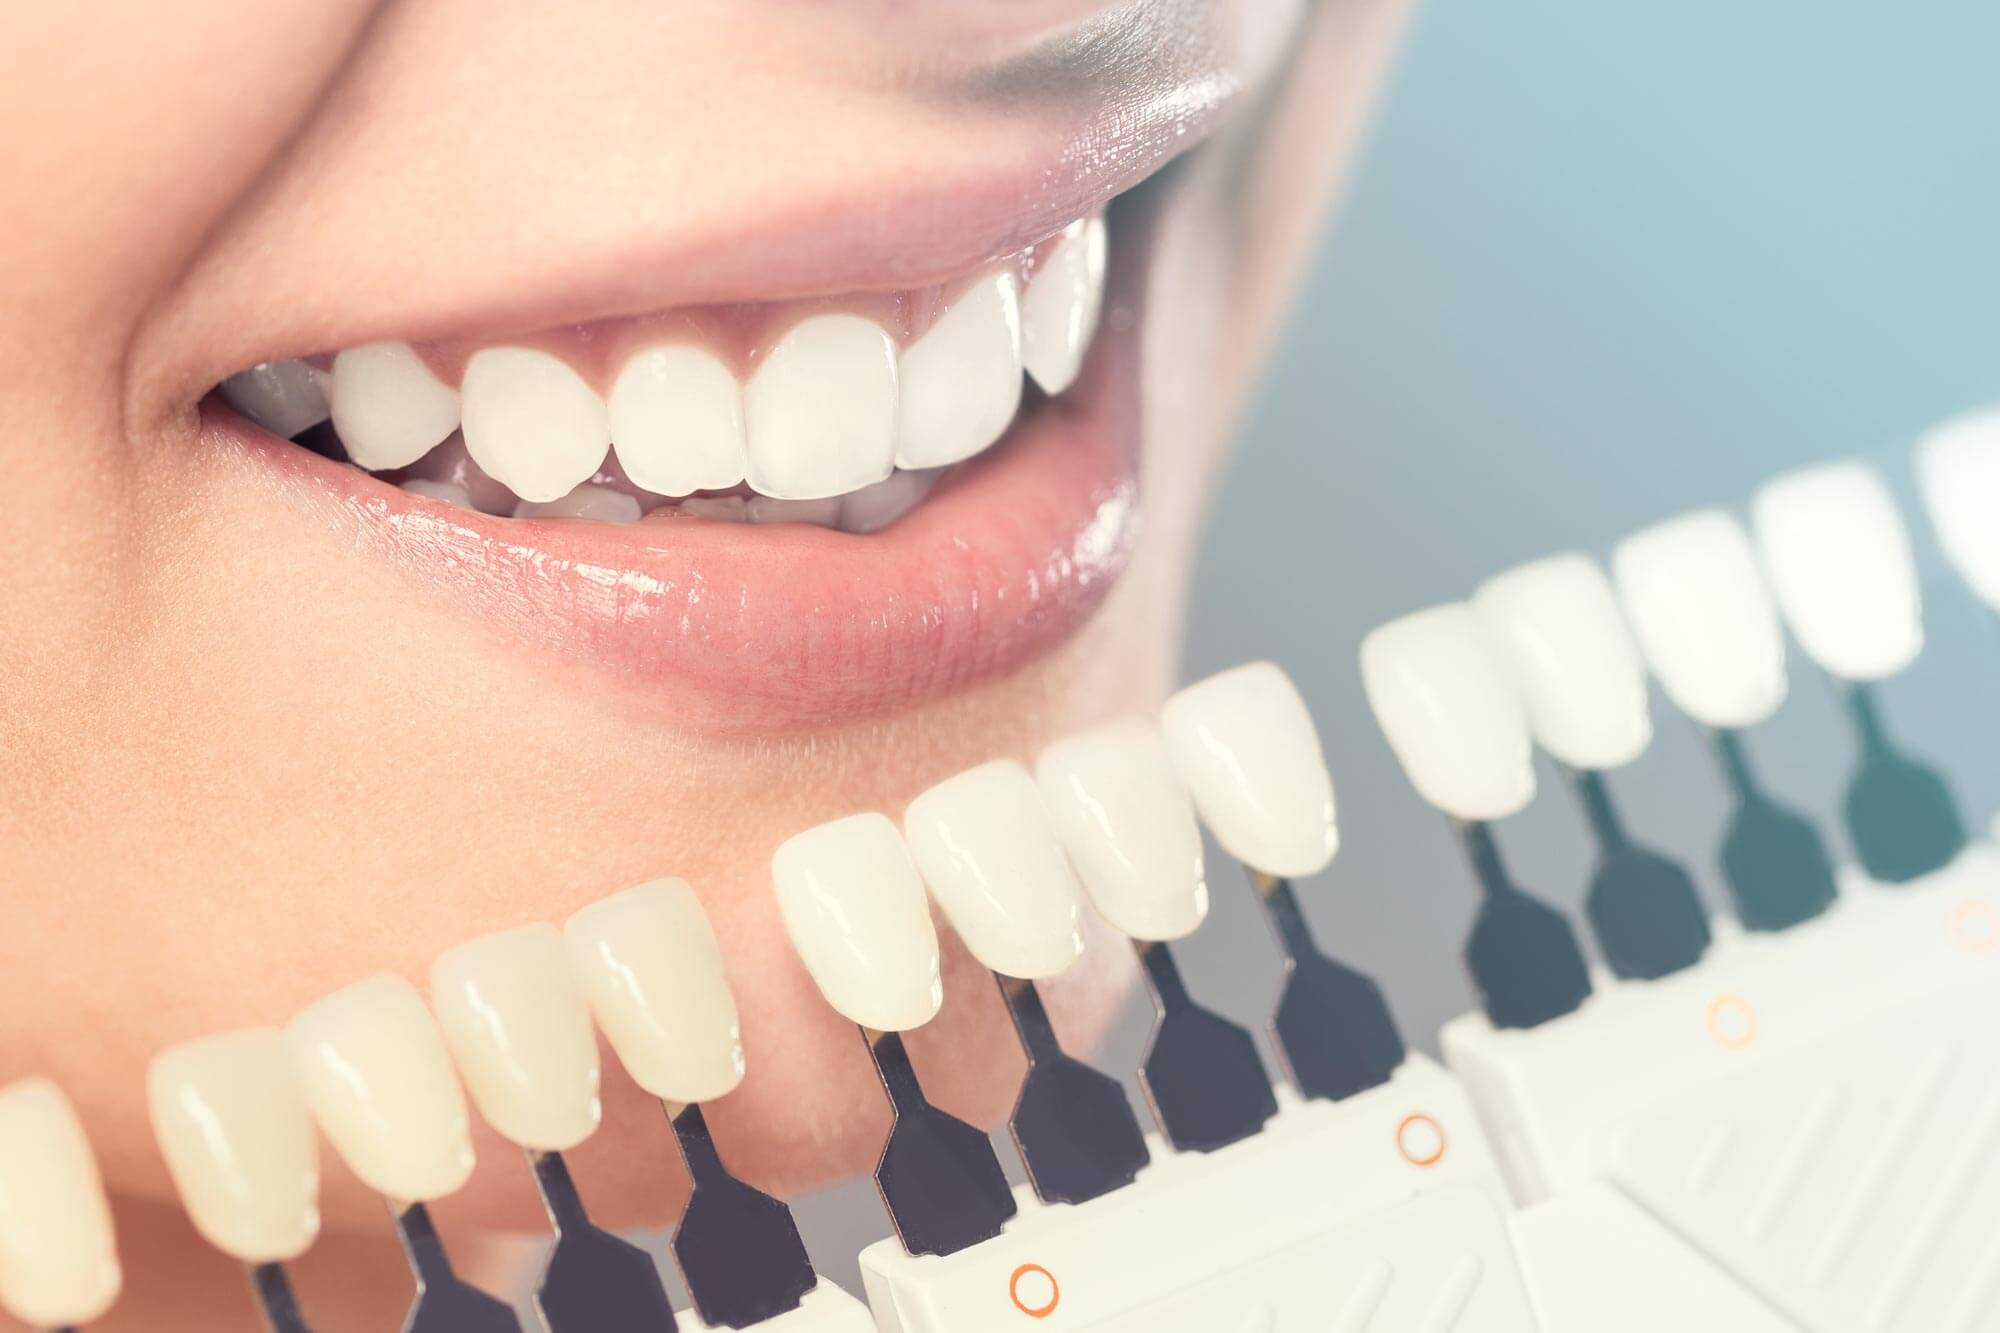 Morgan Street Dental Centre Teeth Whitening Wagga - Woman with Great White Smile Compared to Teeth Model